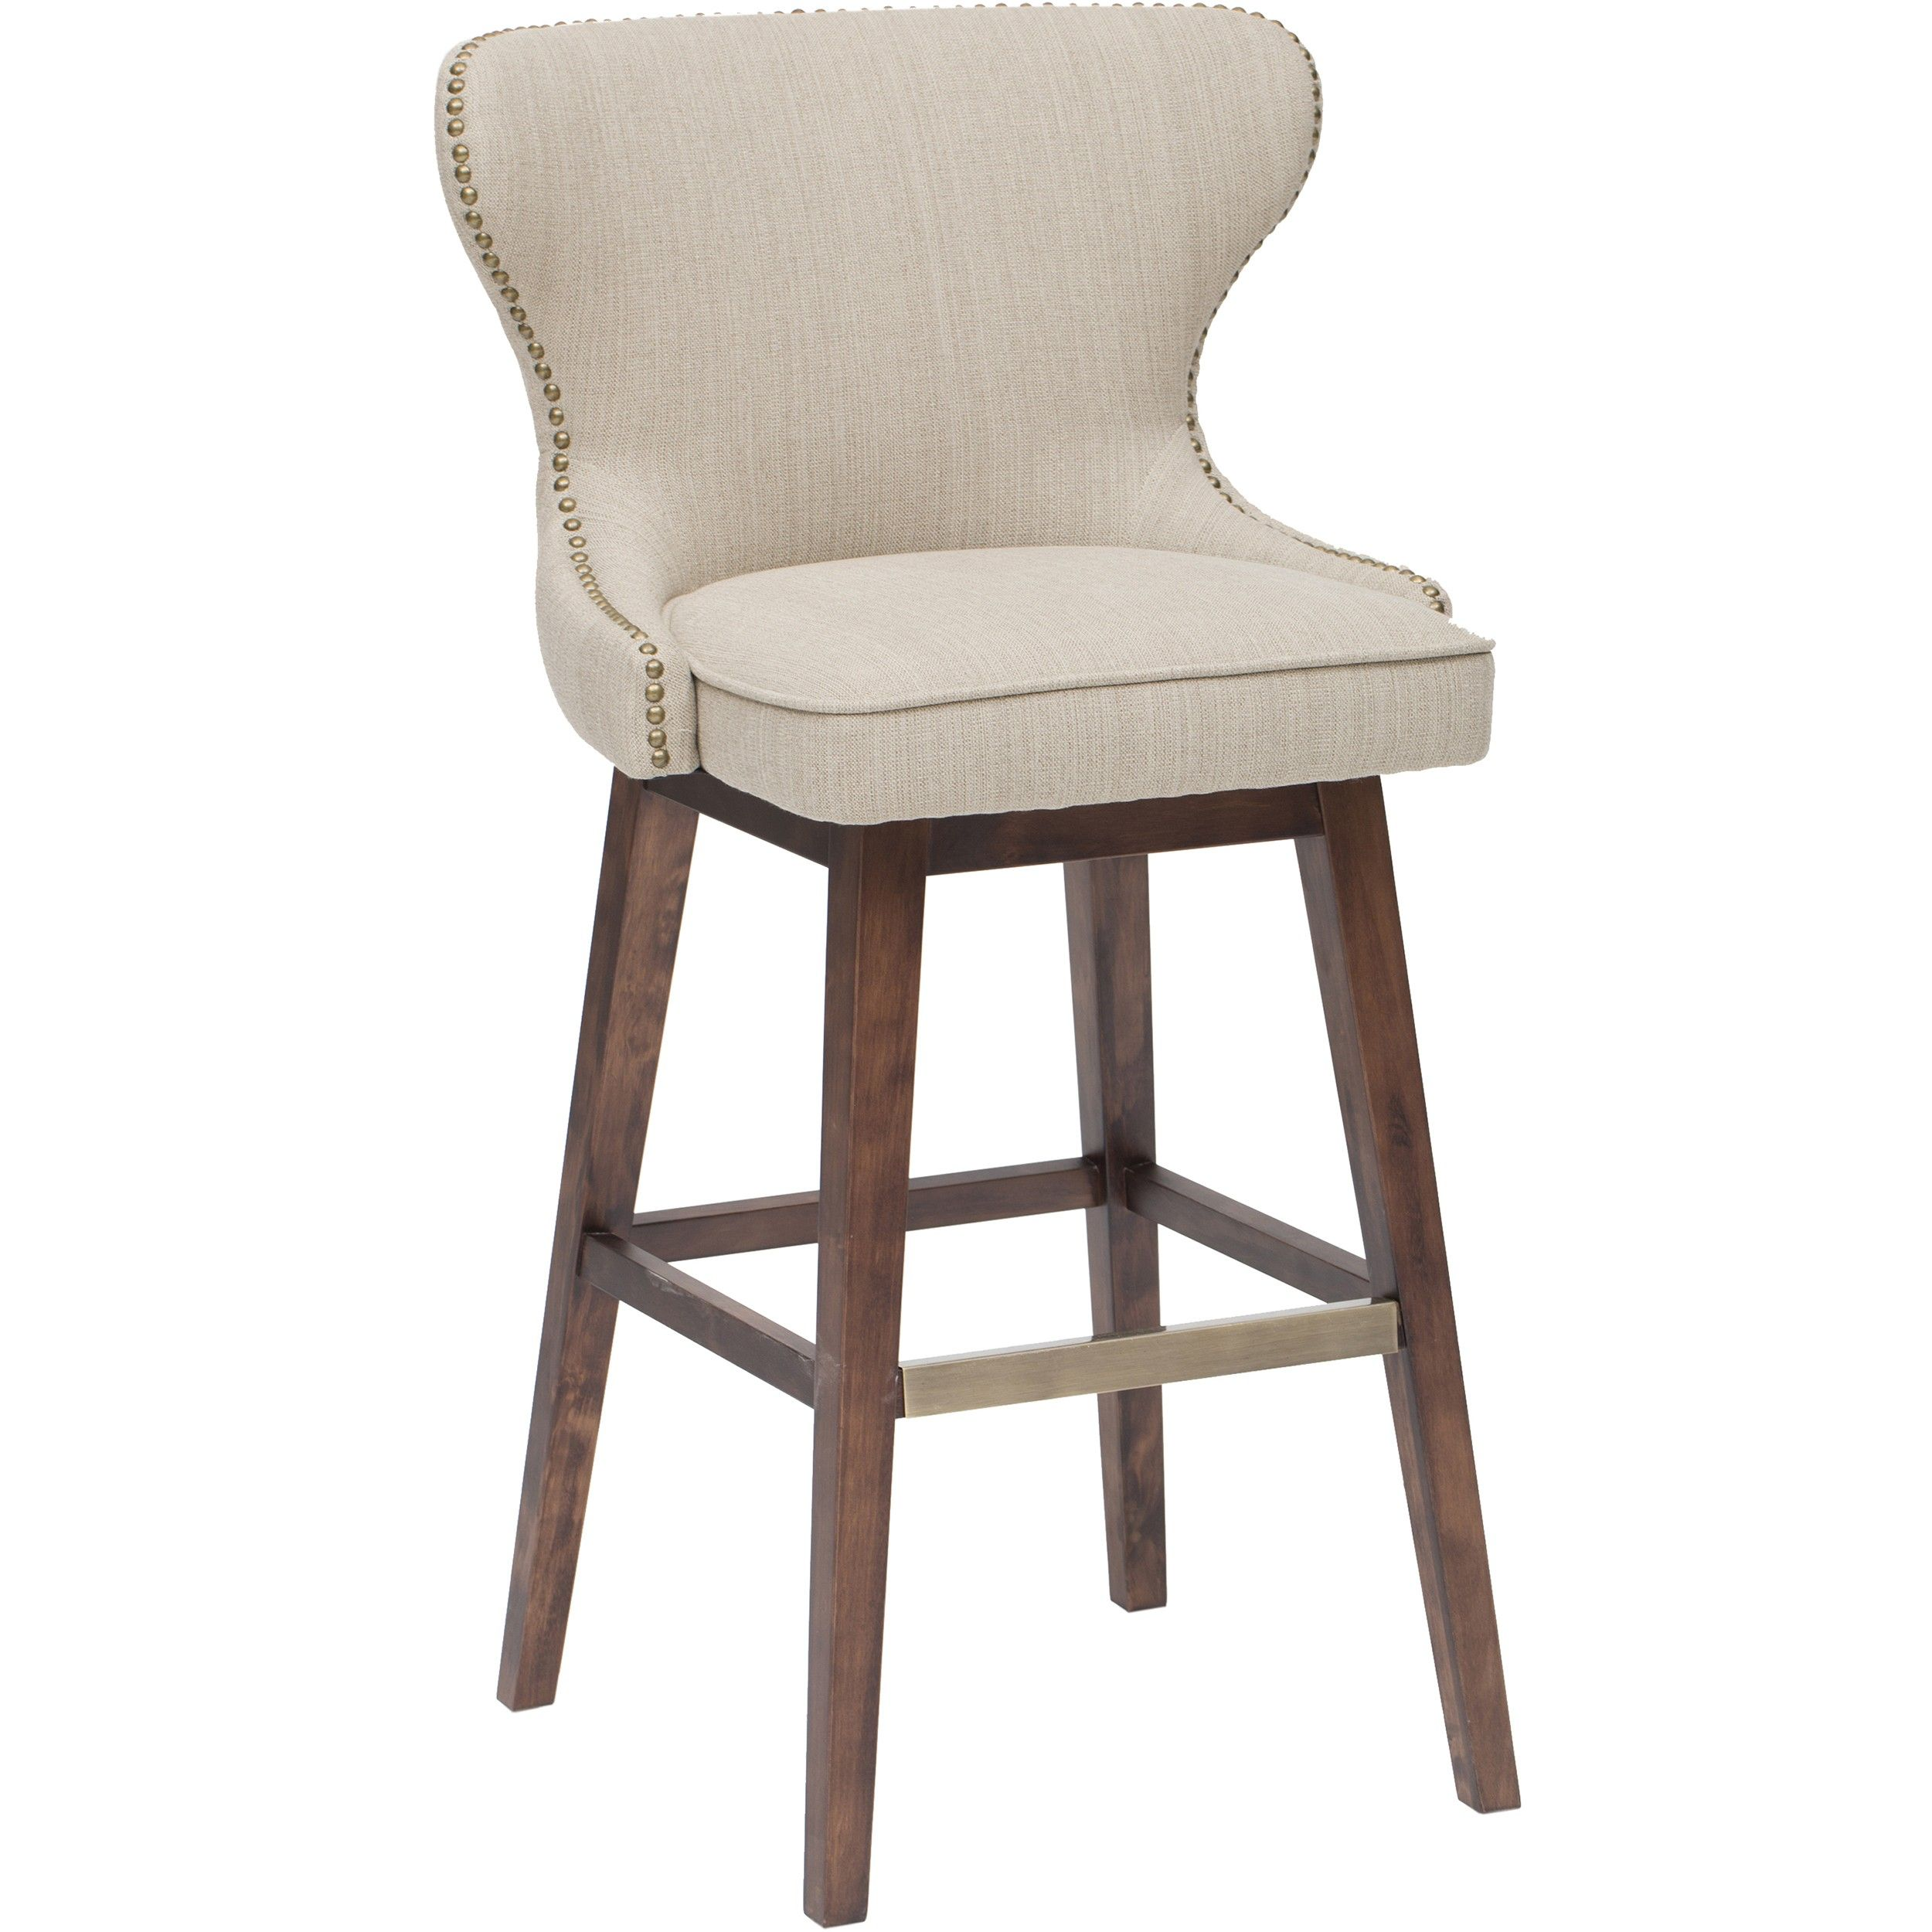 The Contemporary Julie Swivel Barstool Features A Bold, European Inspired  Design With Gold Nail Heads That Add Sophistication And Elegance.